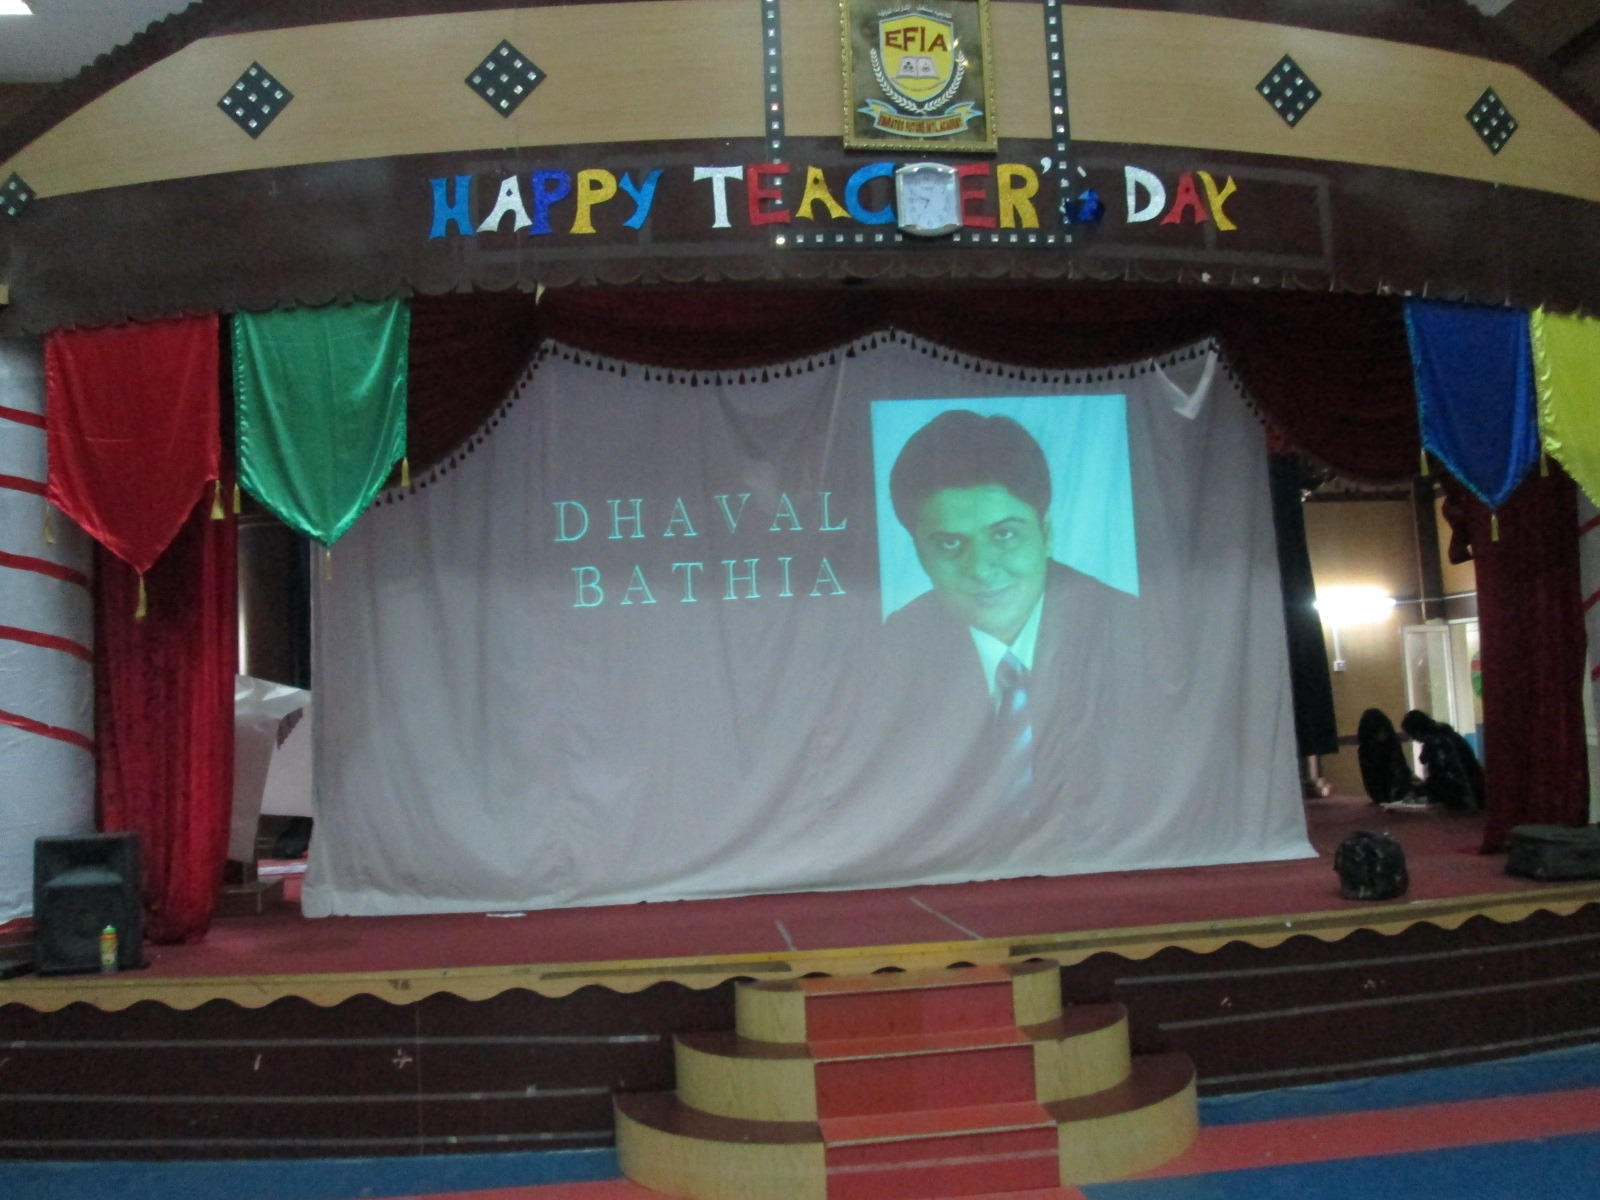 Students gave a surprise to Mr. Dhaval Bathia on Teacher's Day!